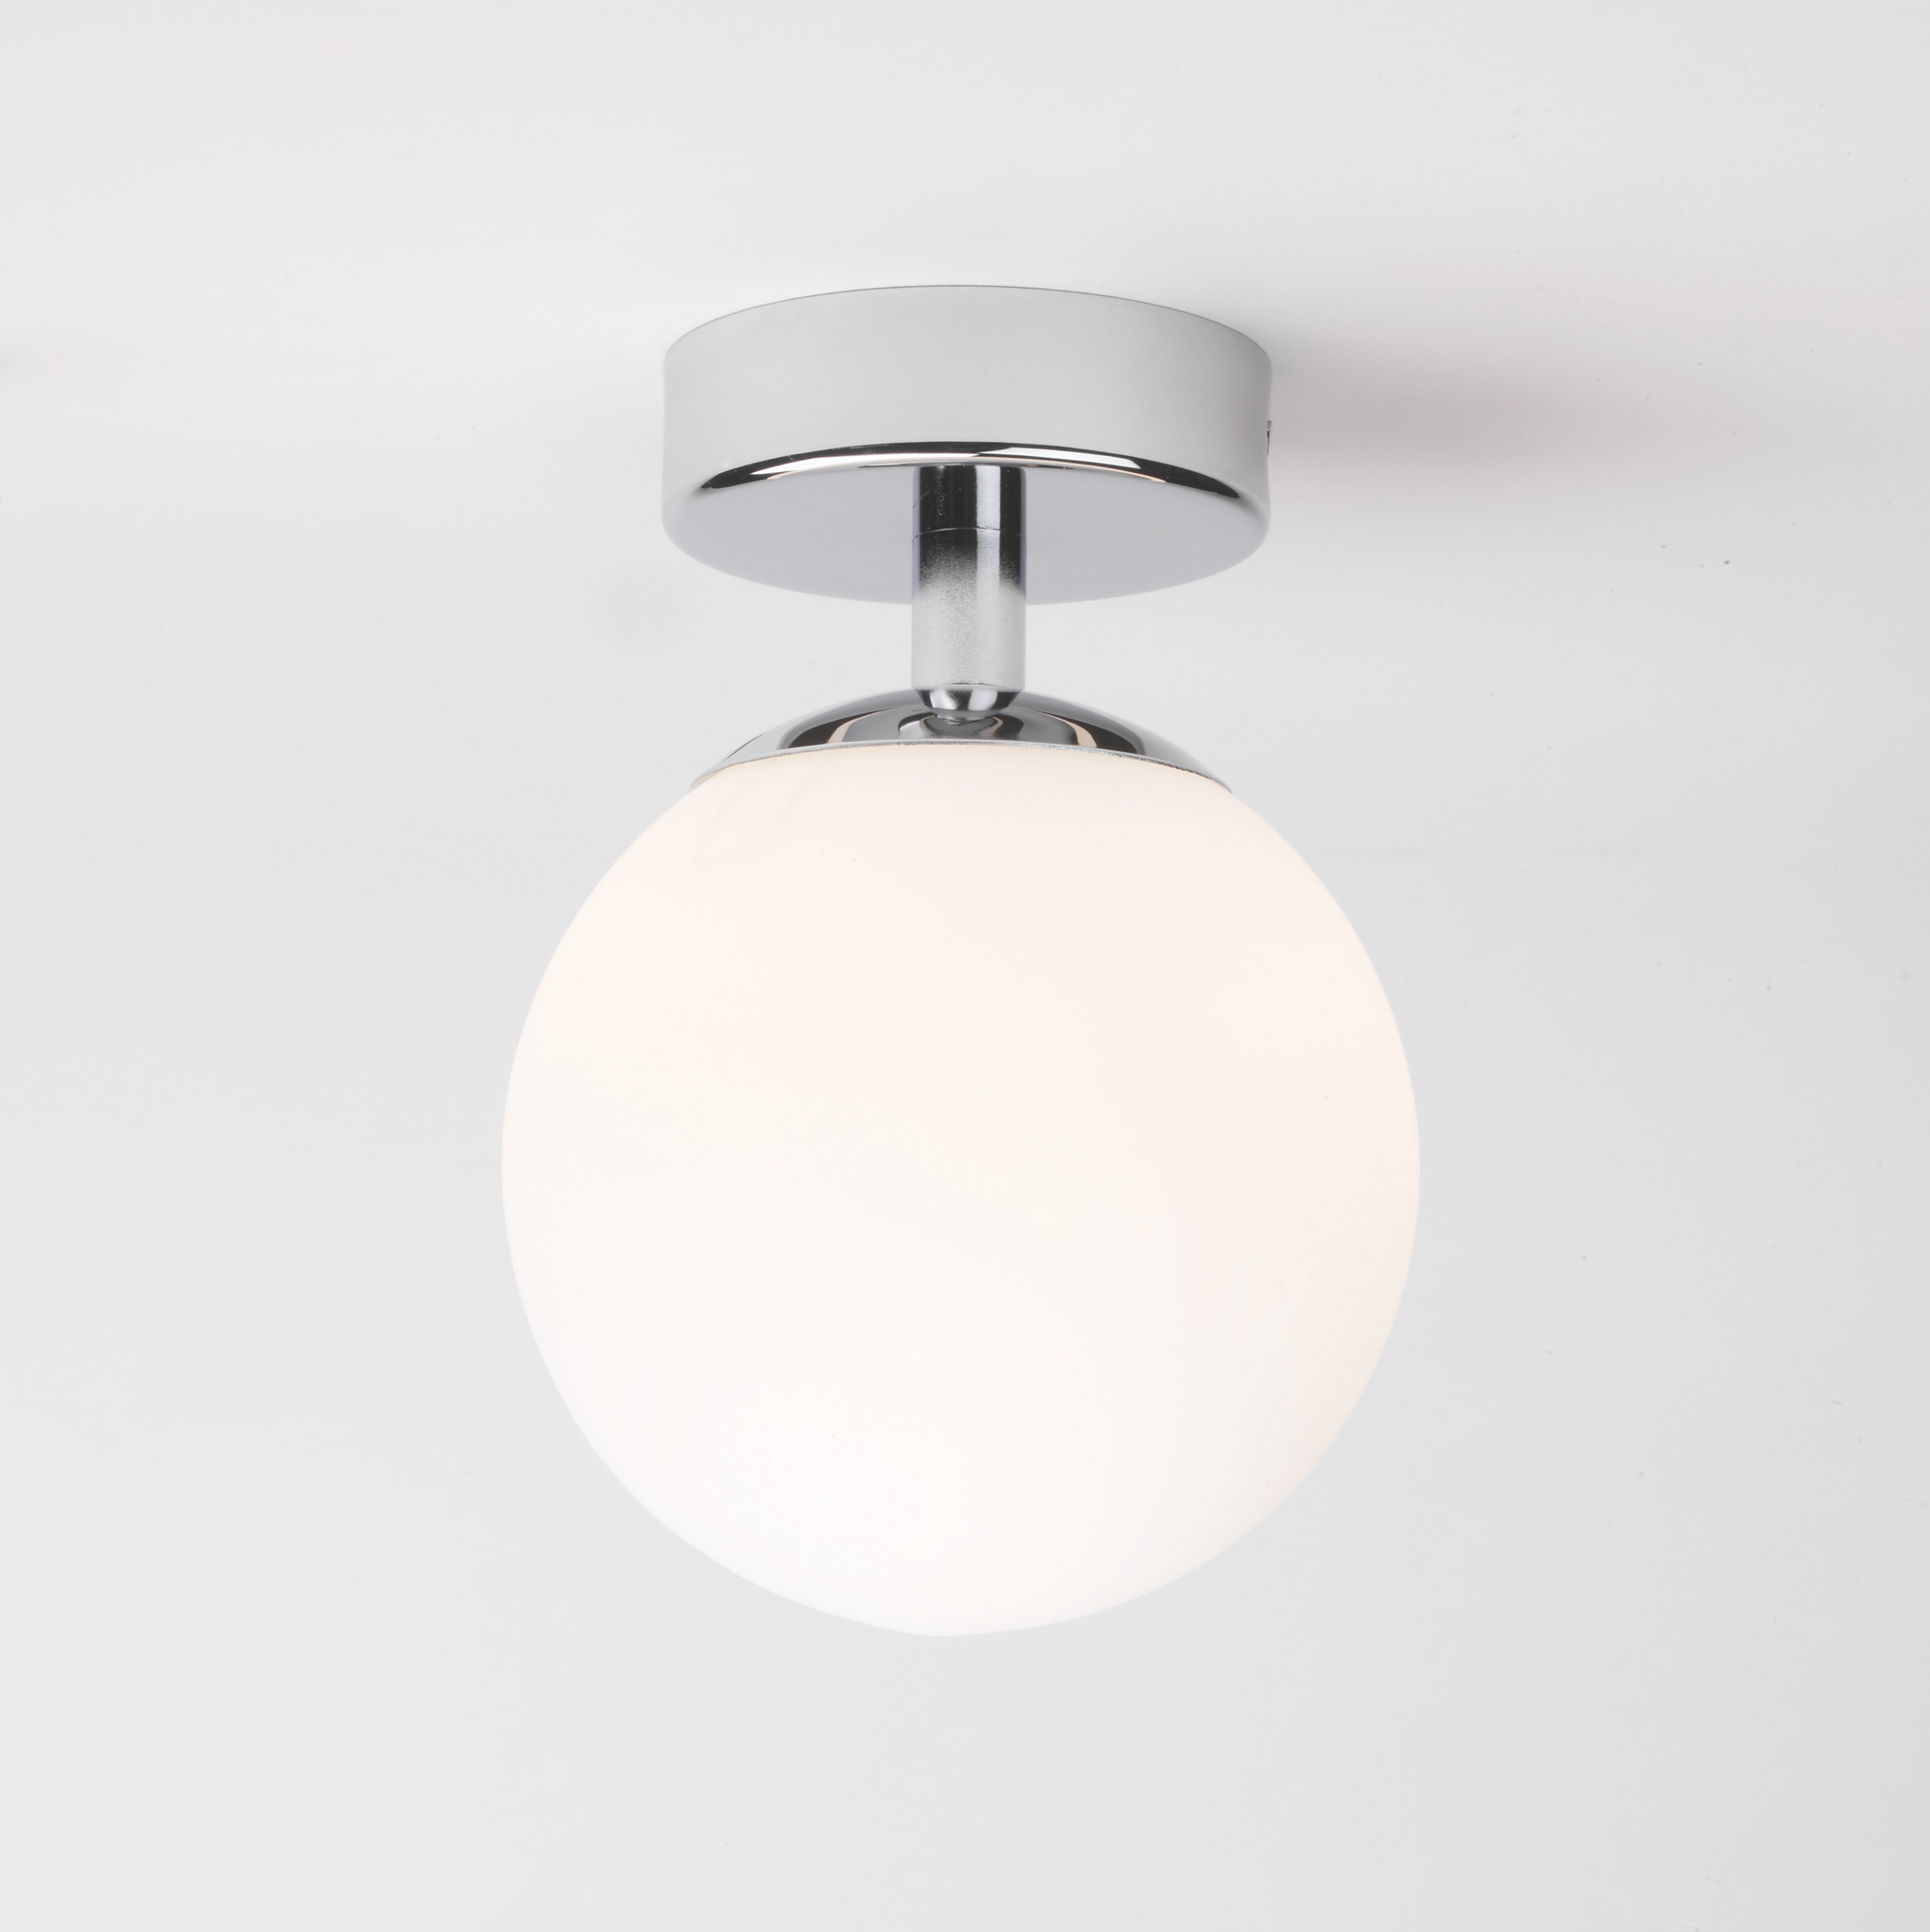 astro denver 0323 bathroom glass globe ceiling light chrome 40w g9 mains halogen ebay